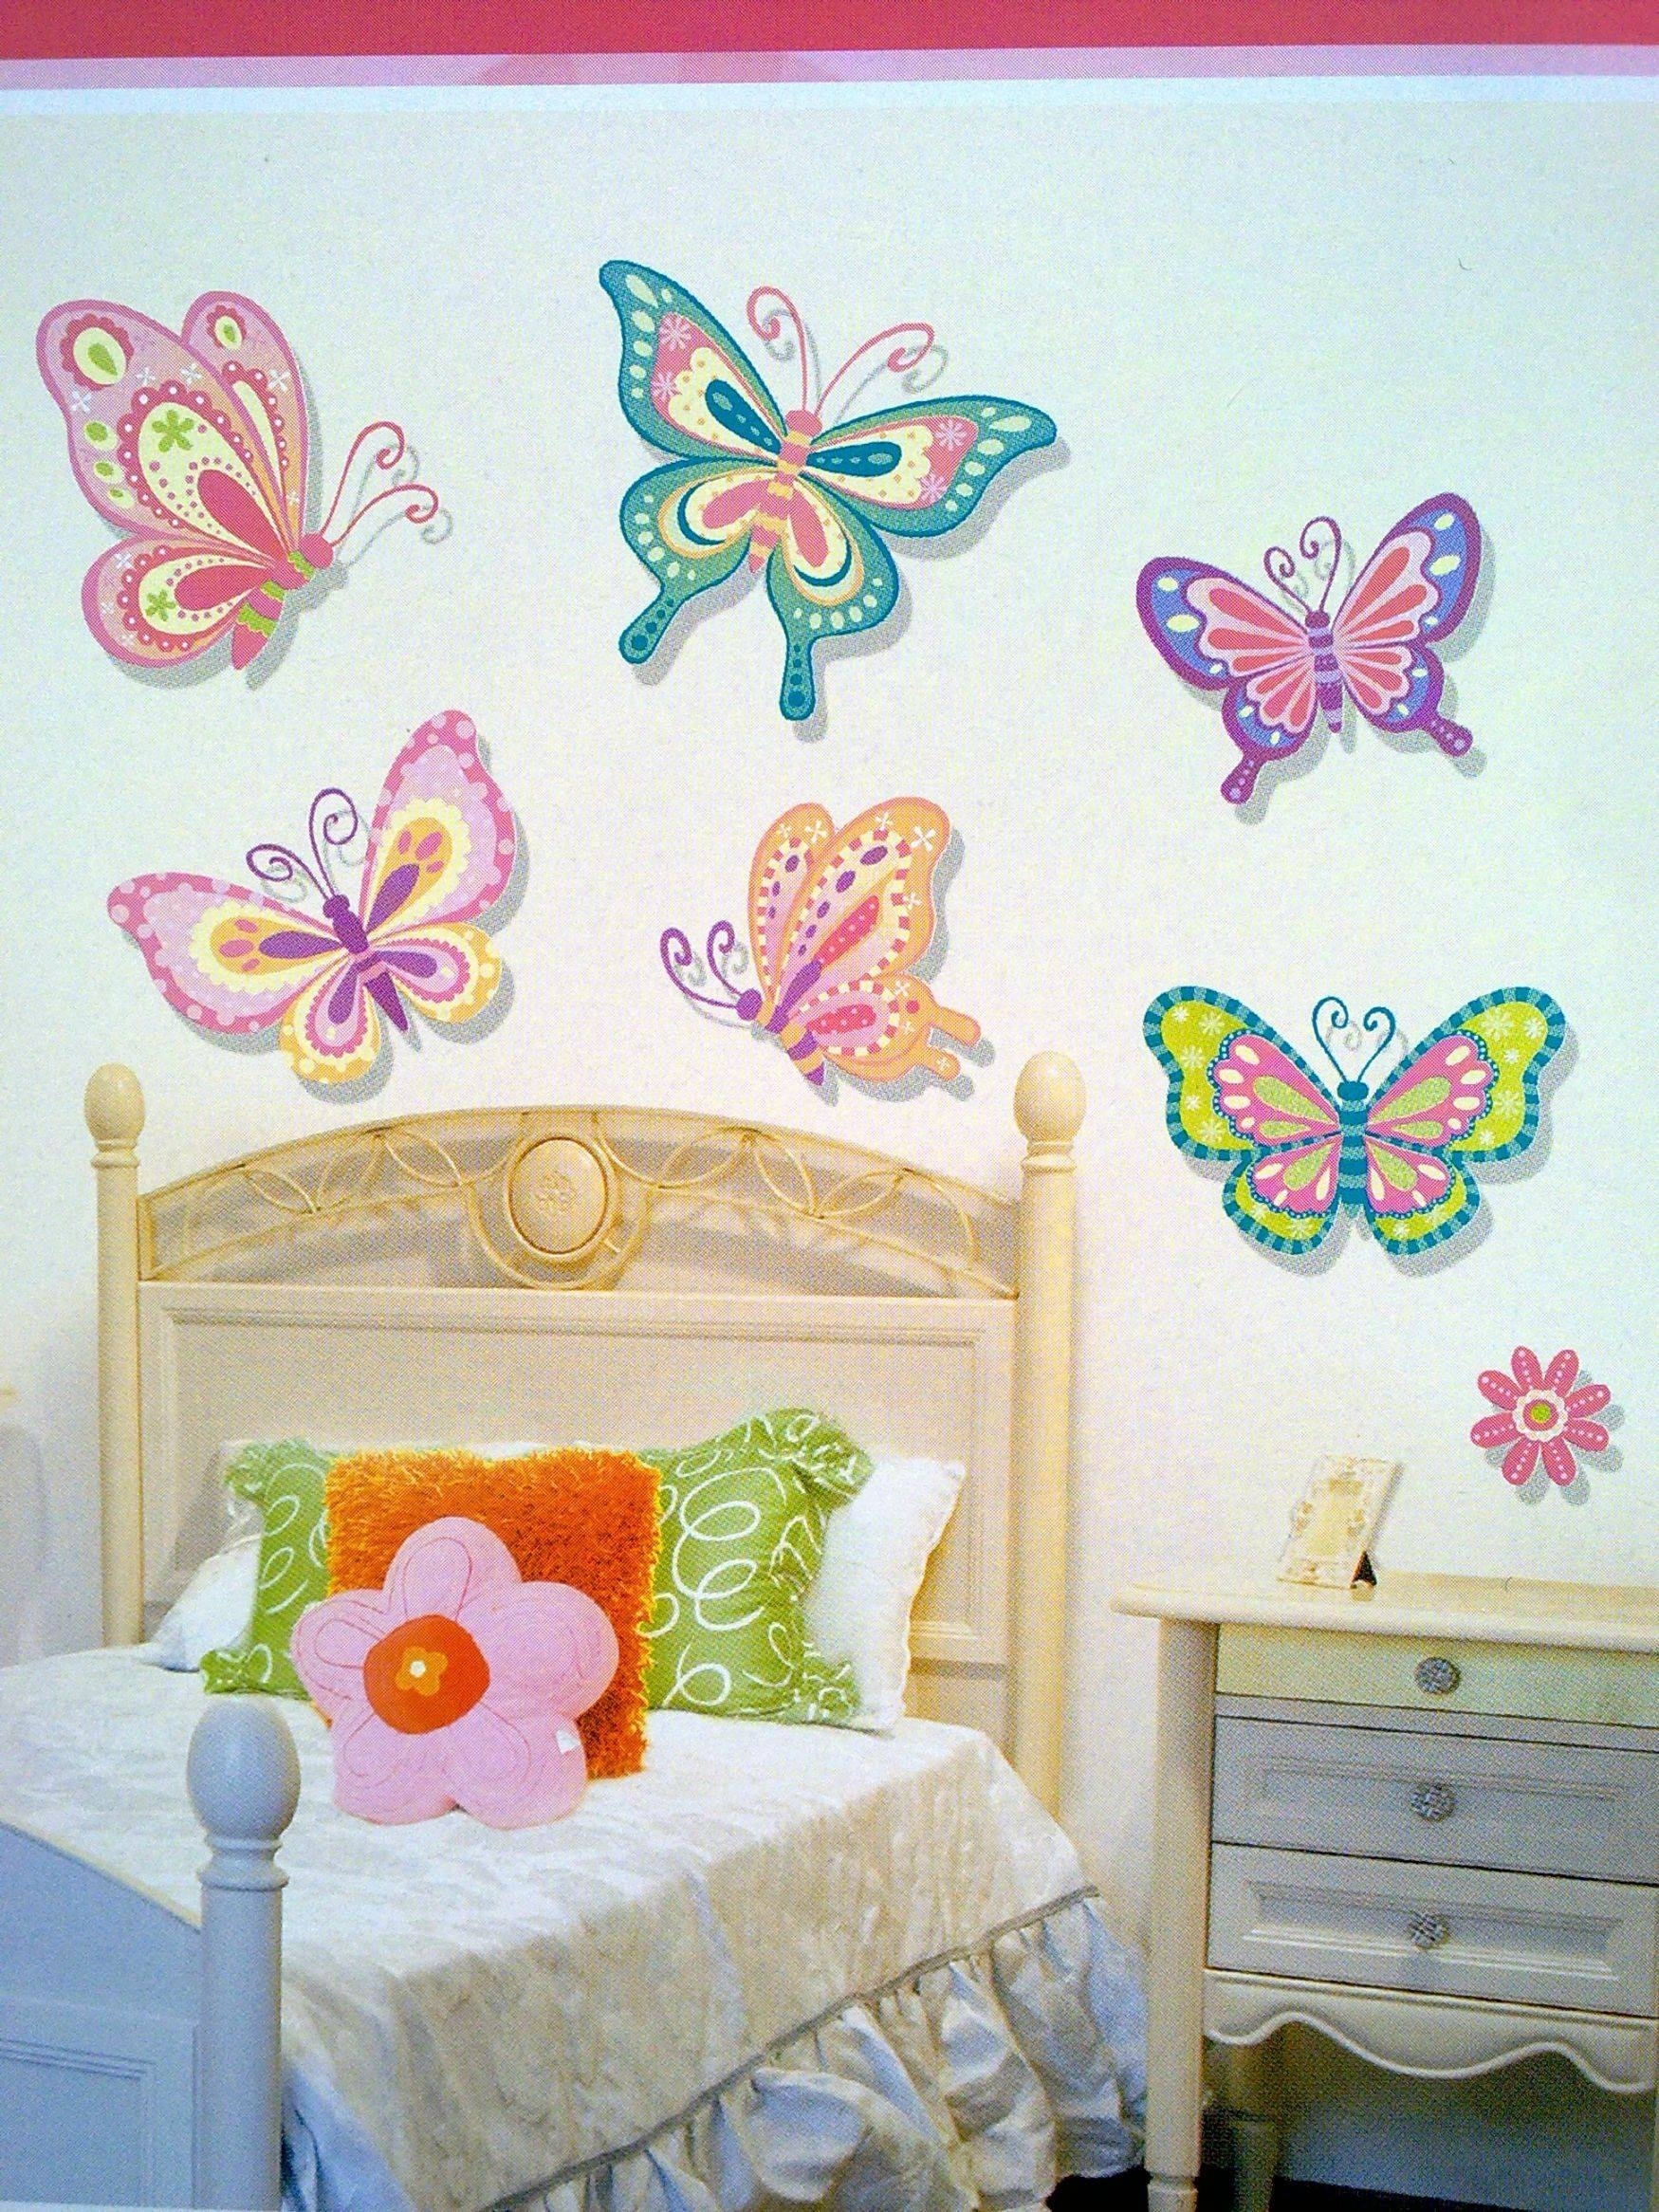 Wall Decor : Full Wall Decals Butterfly Wall Stickers Wall Art Inside Best And Newest Childrens Fabric Wall Art (View 9 of 15)